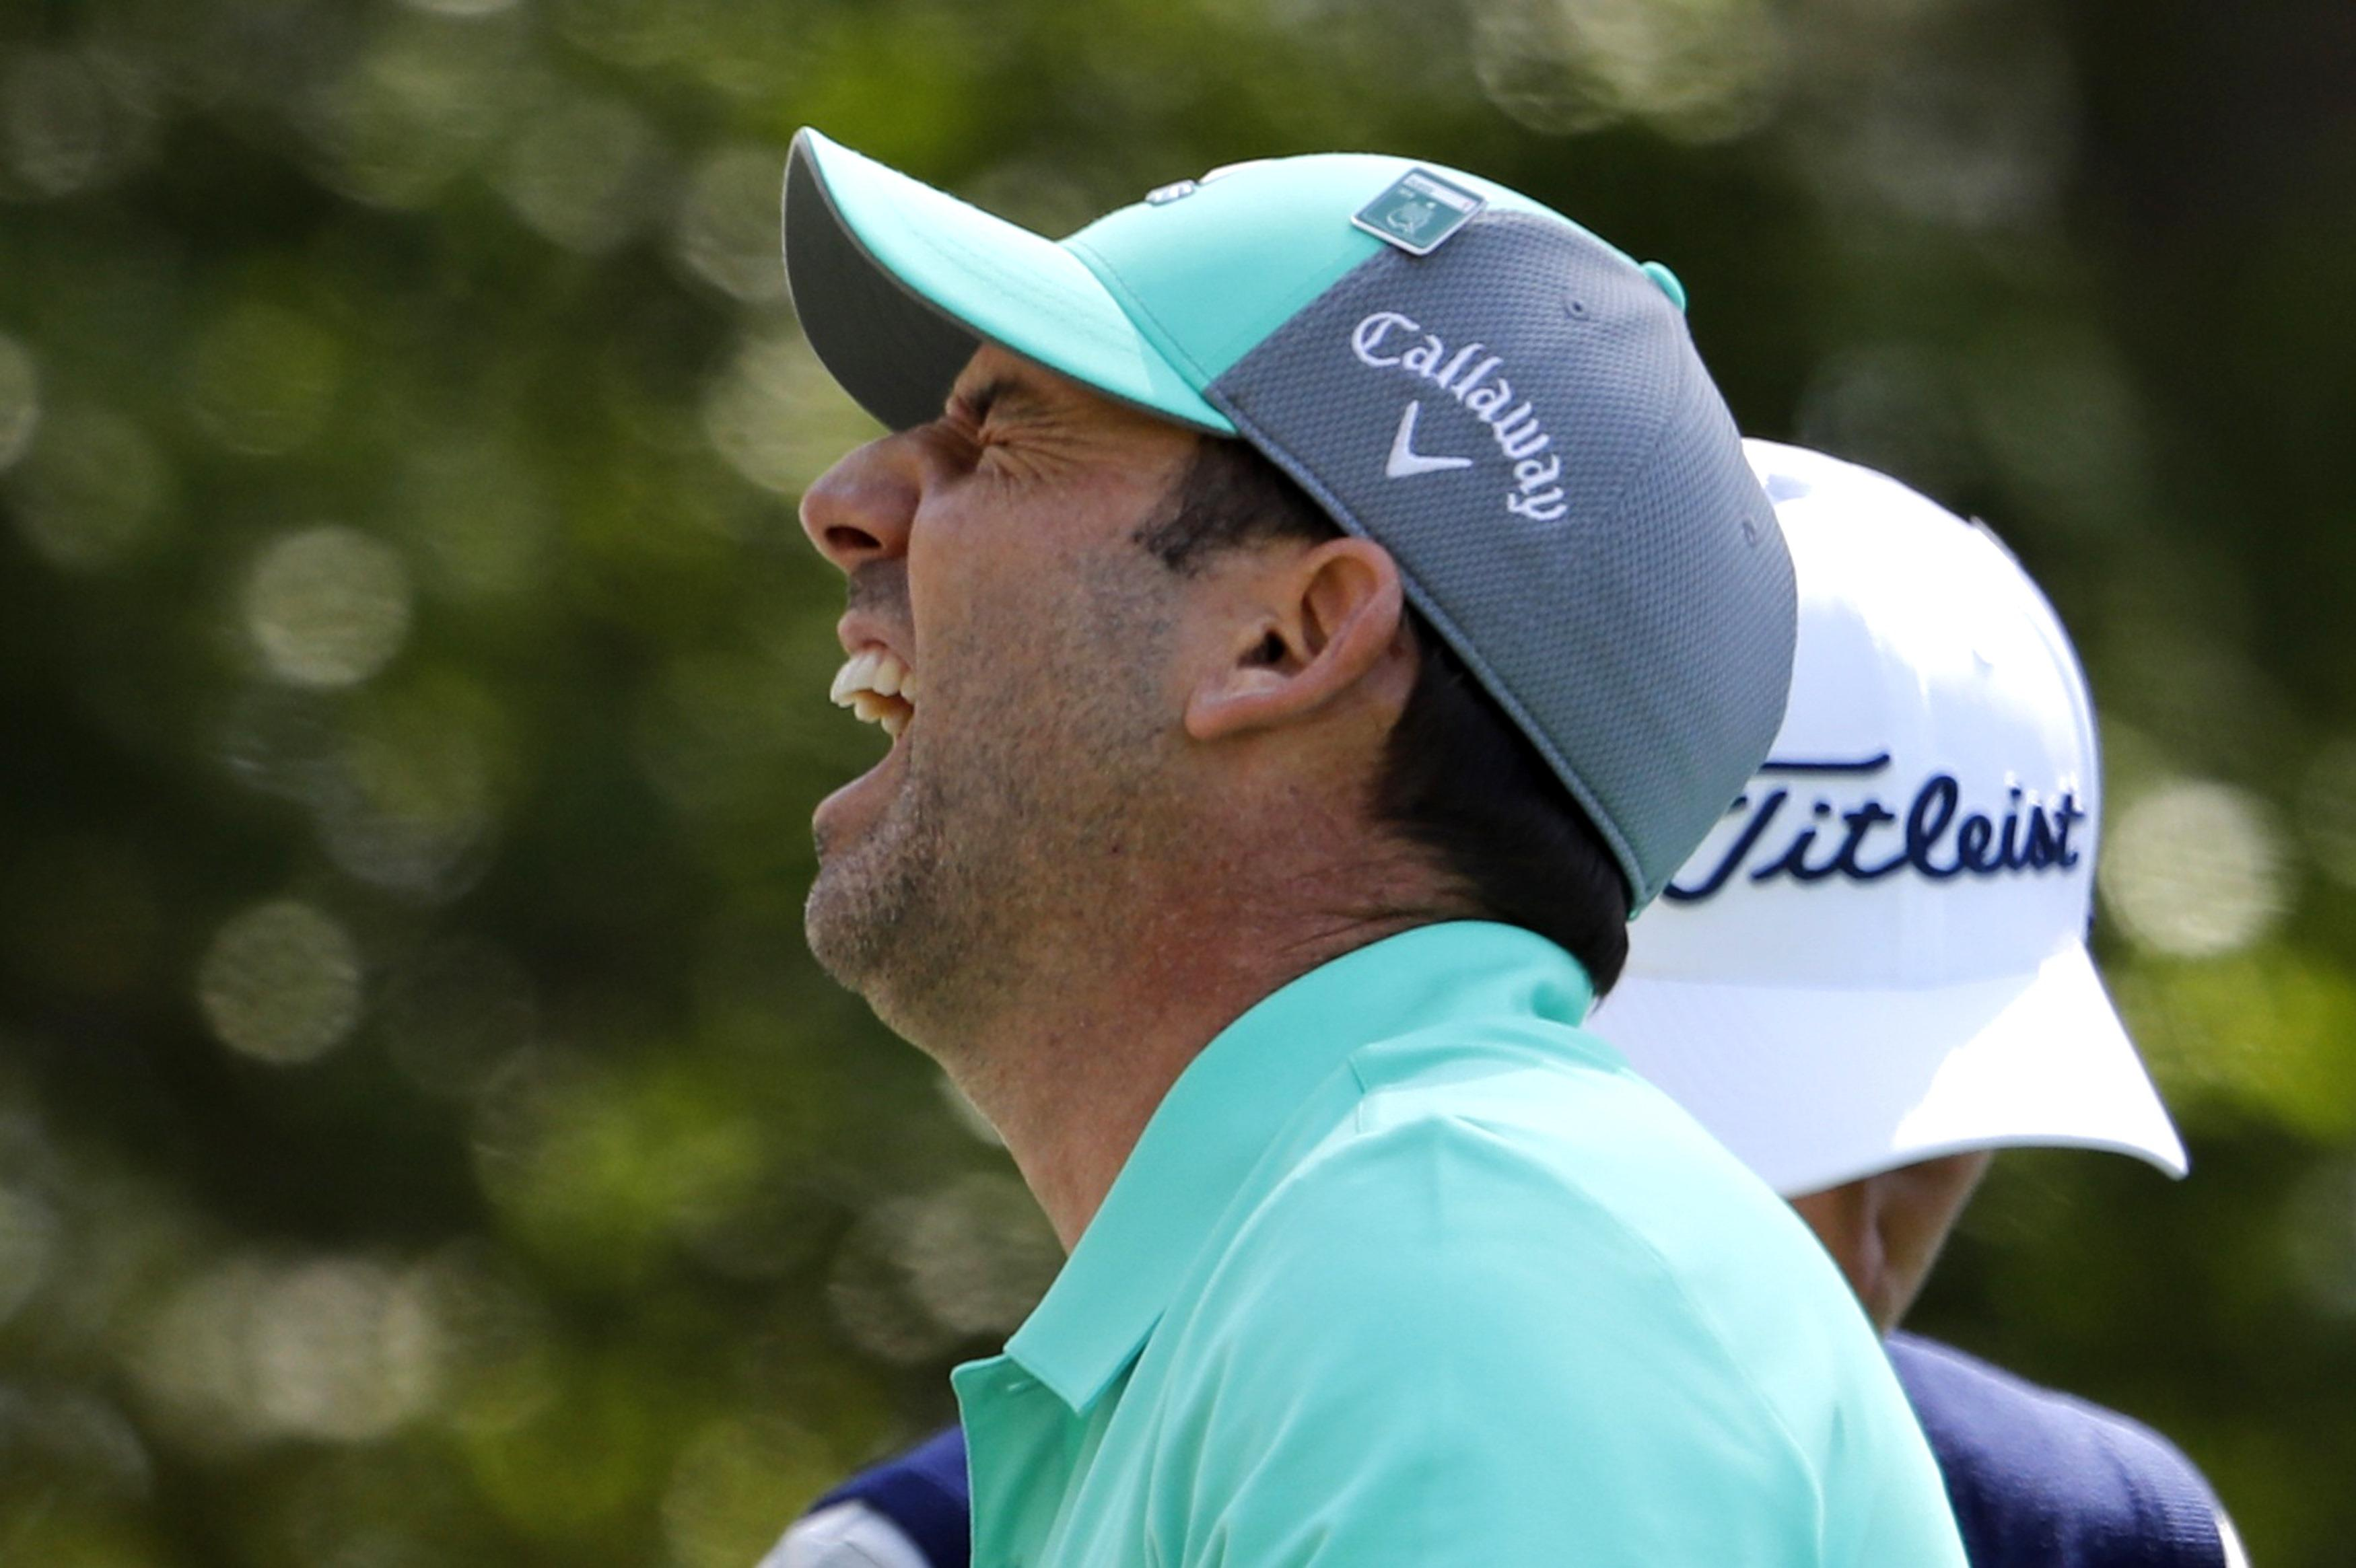 Sergio Aguero suffered a nightmare start to his defence of his Masters title after taking 13 at the 15th